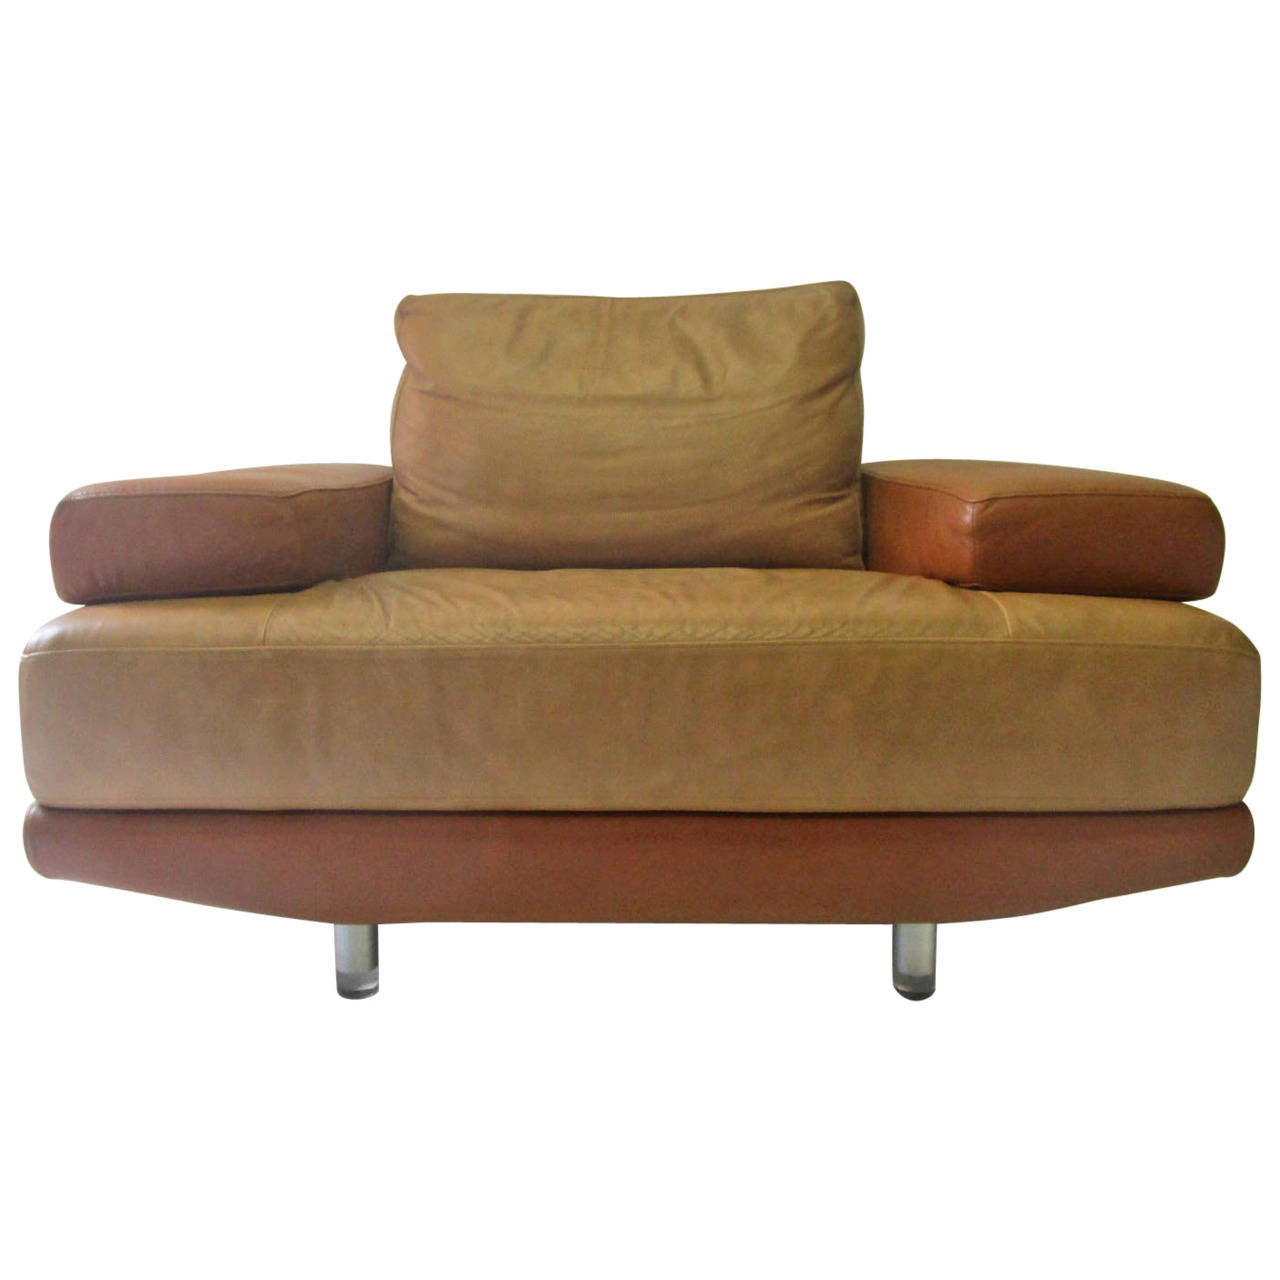 outstanding nicoletti leather armchair made in italy